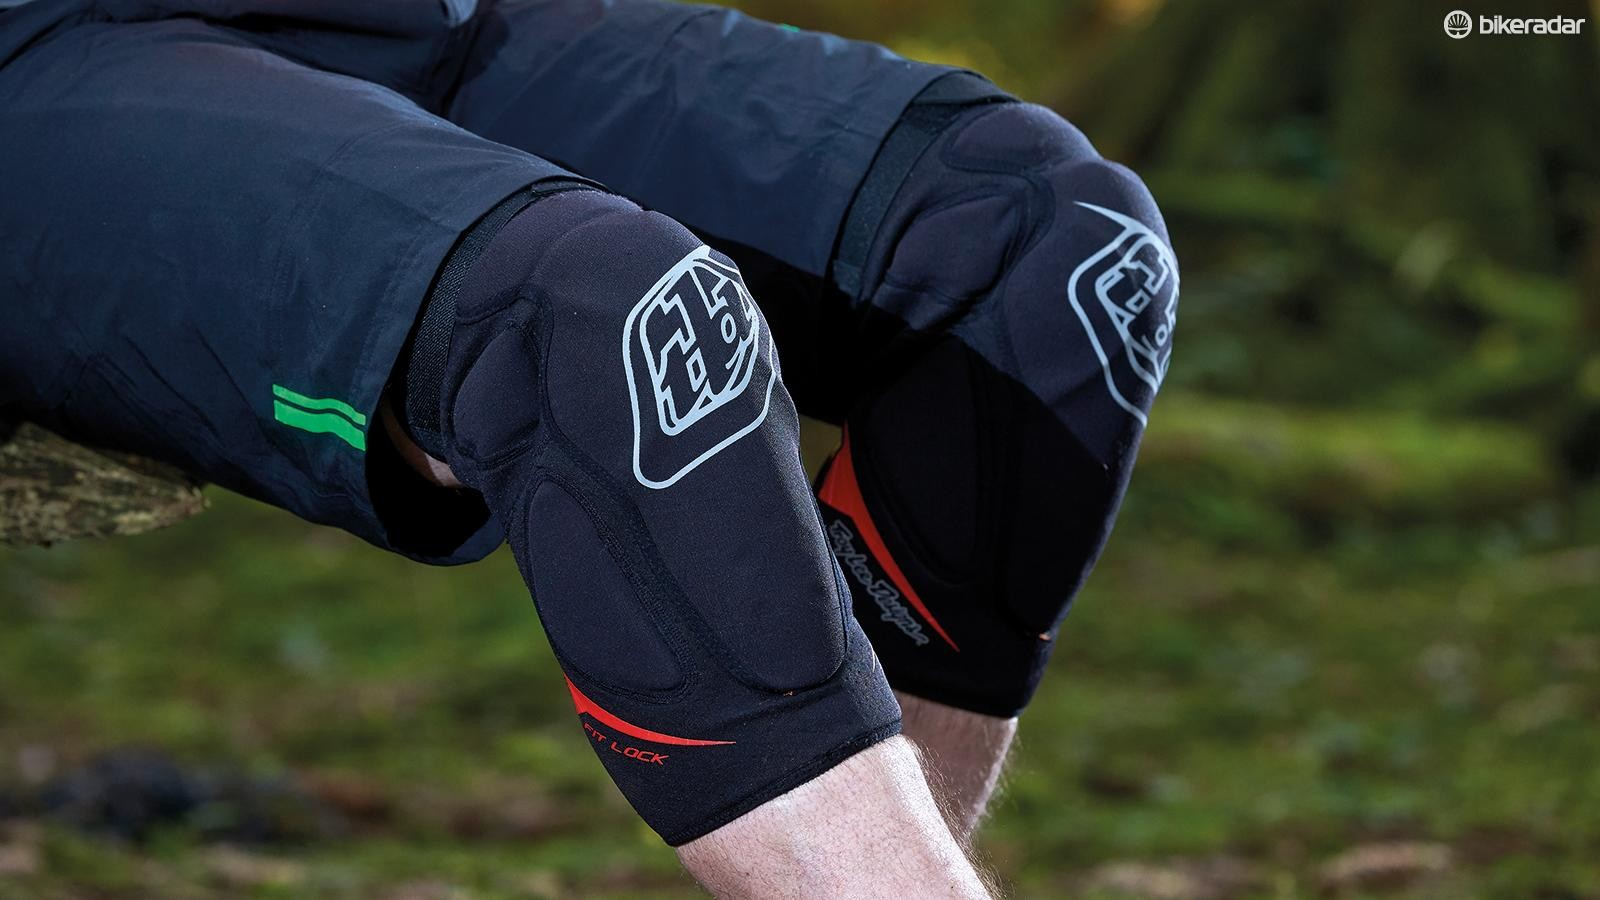 Troy Lee Designs Raid knee pads